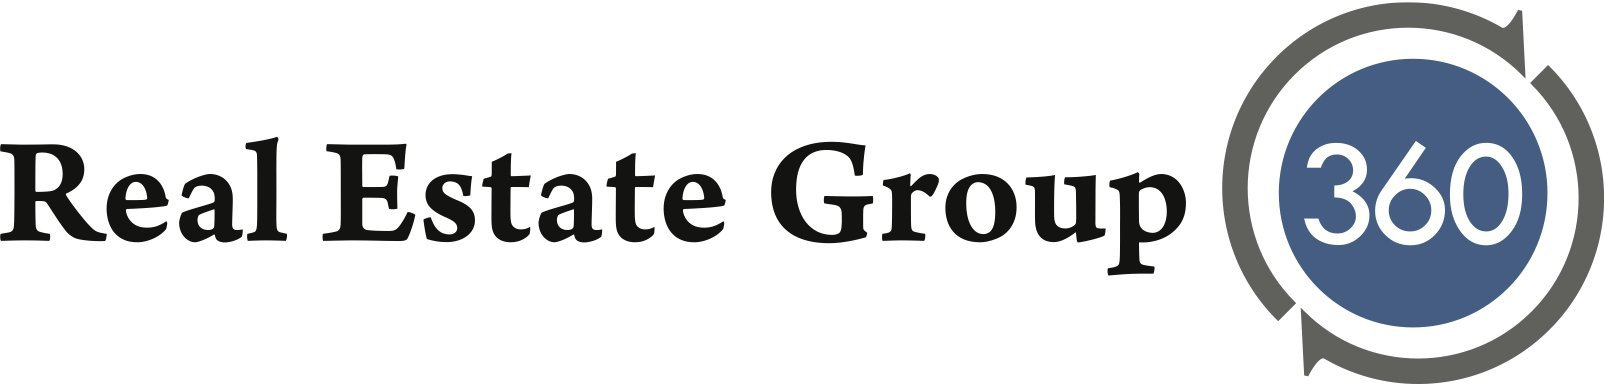 Real Estate Group 360 logo